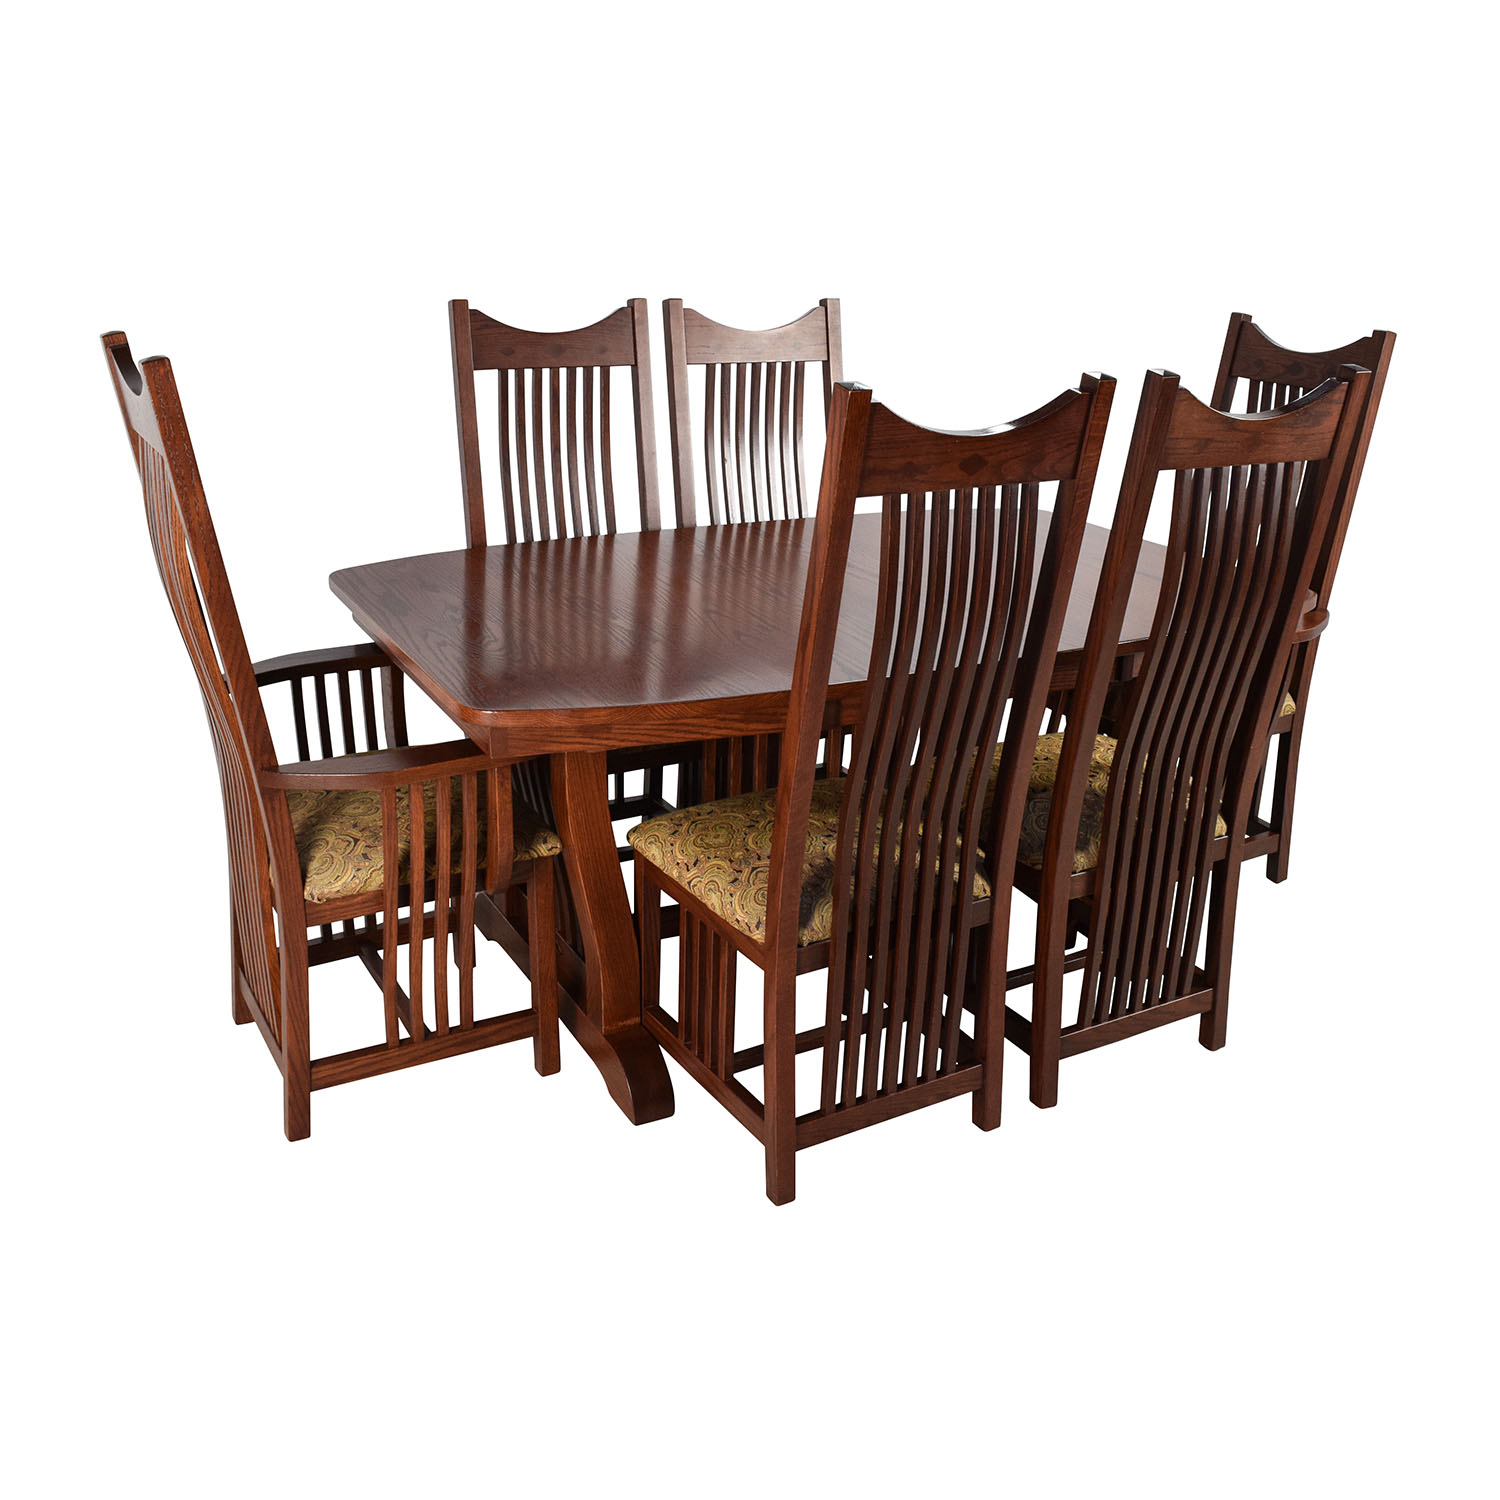 Homestead Furniture Homestead Furniture Classic Mission Solid Oak Dining Set for sale